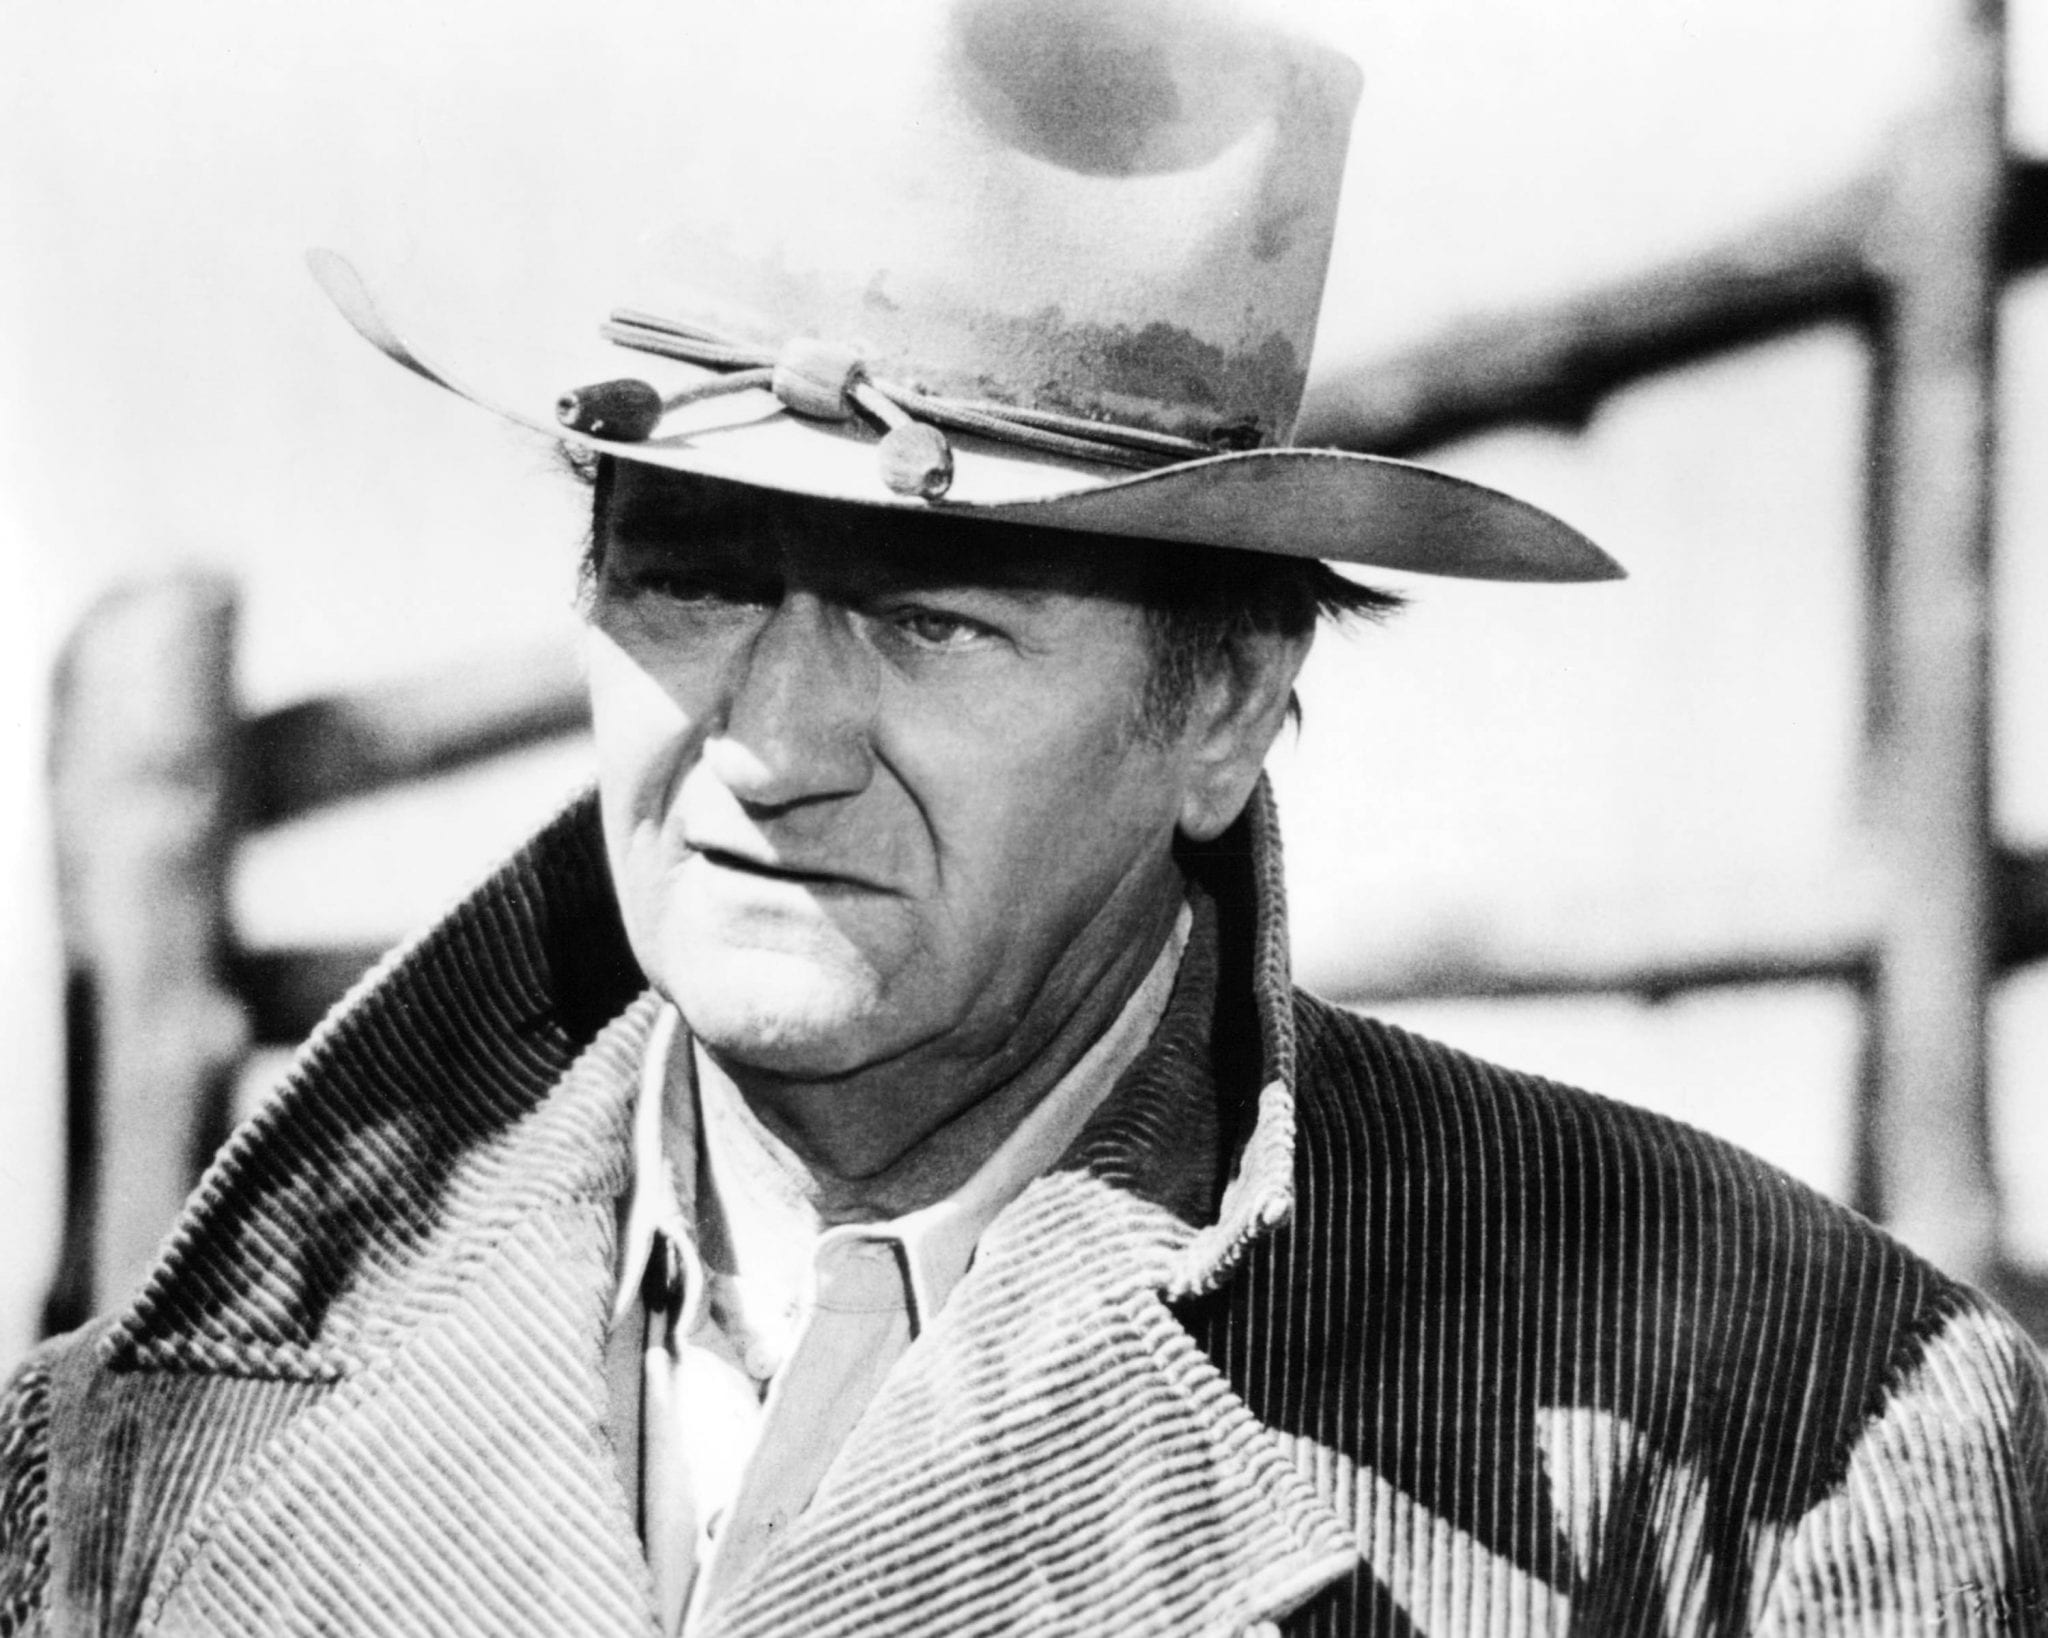 American actor John Wayne as Wil Andersen in 'The Cowboys', directed by Mark Rydell. (Photo Credit: Silver Screen Collection | Getty Images)